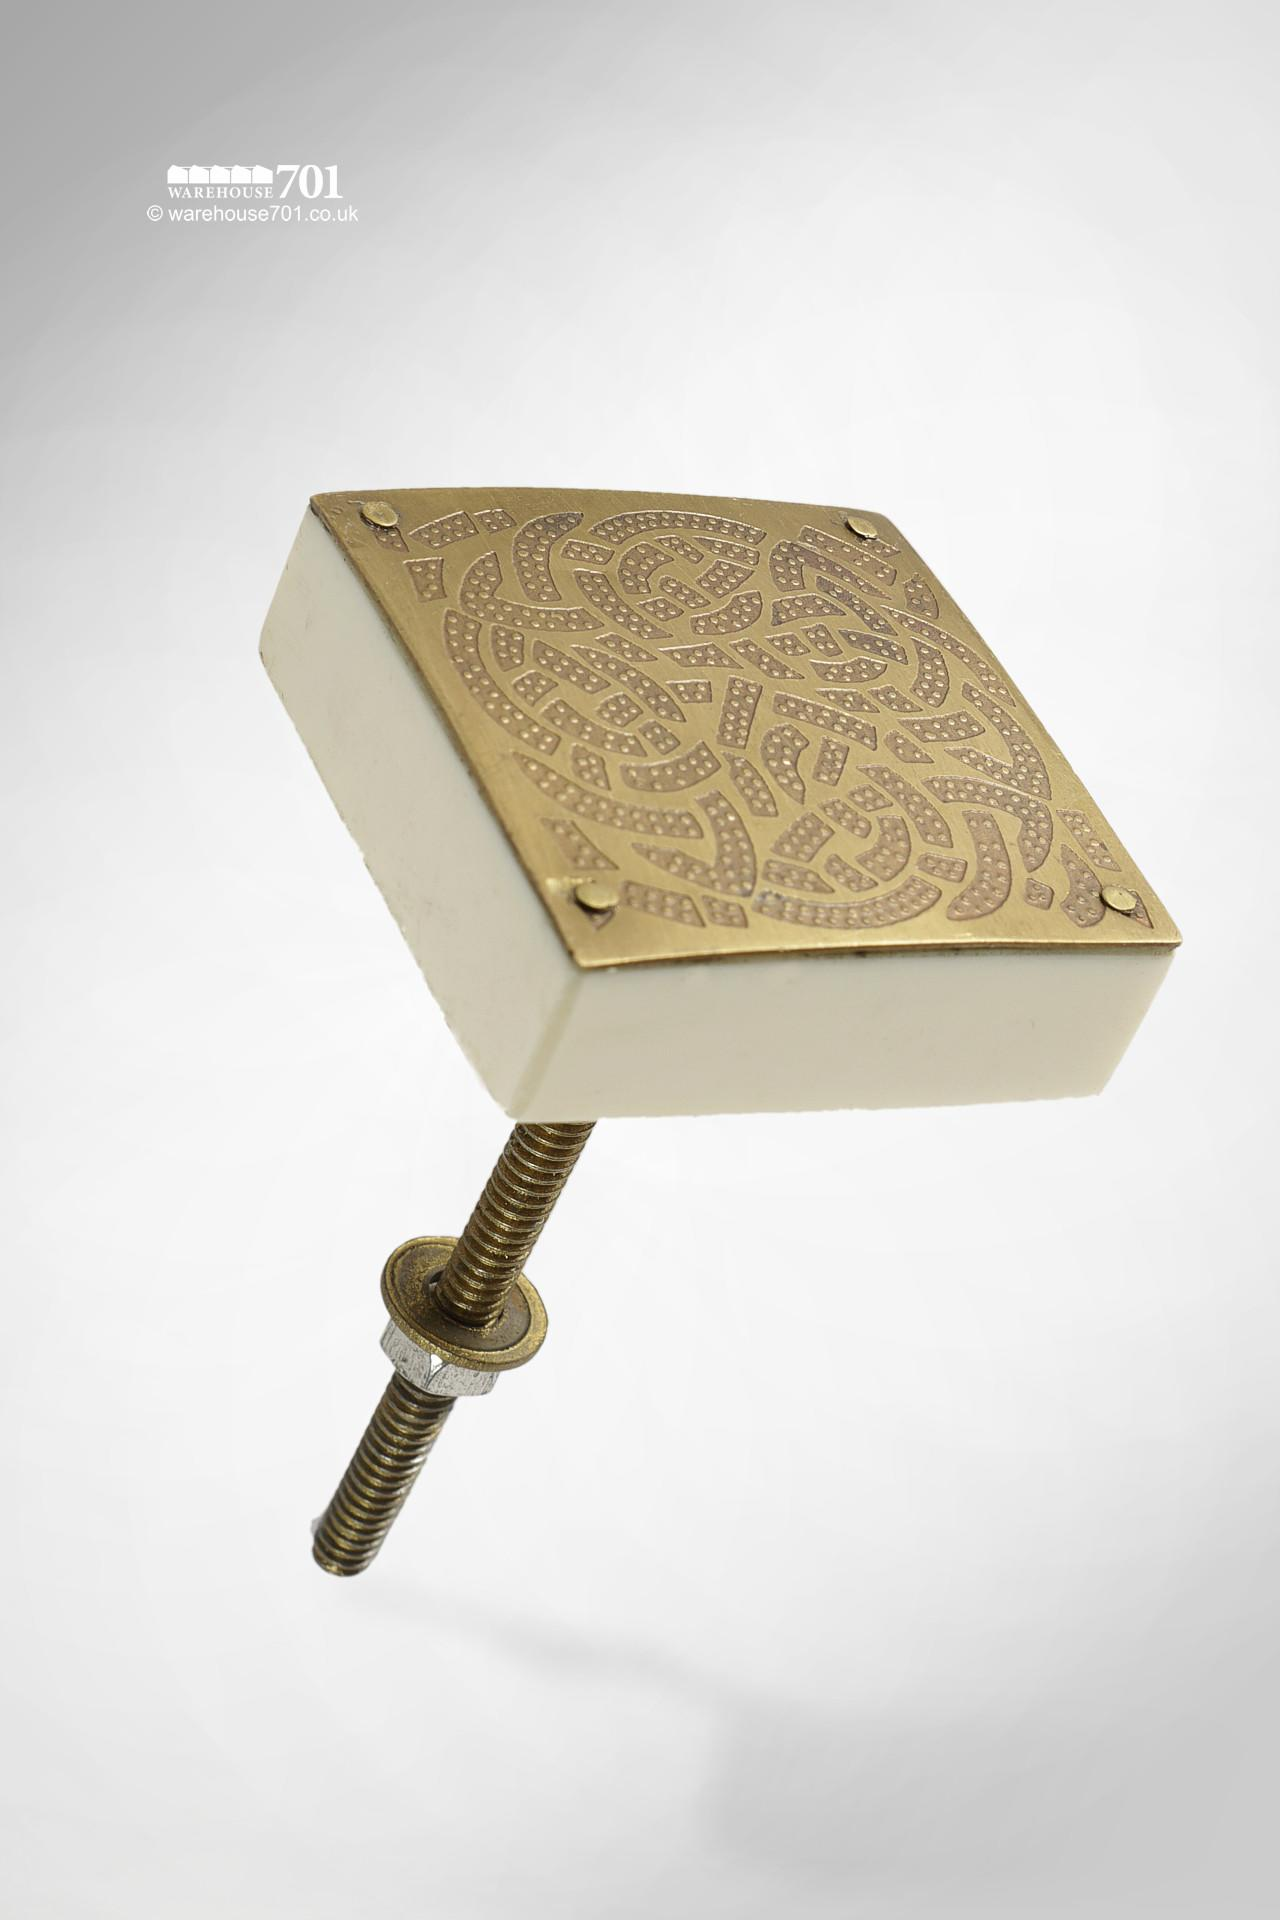 New Embossed and Riveted Brass Pattern Square Door, Drawer or Cupboard Knob